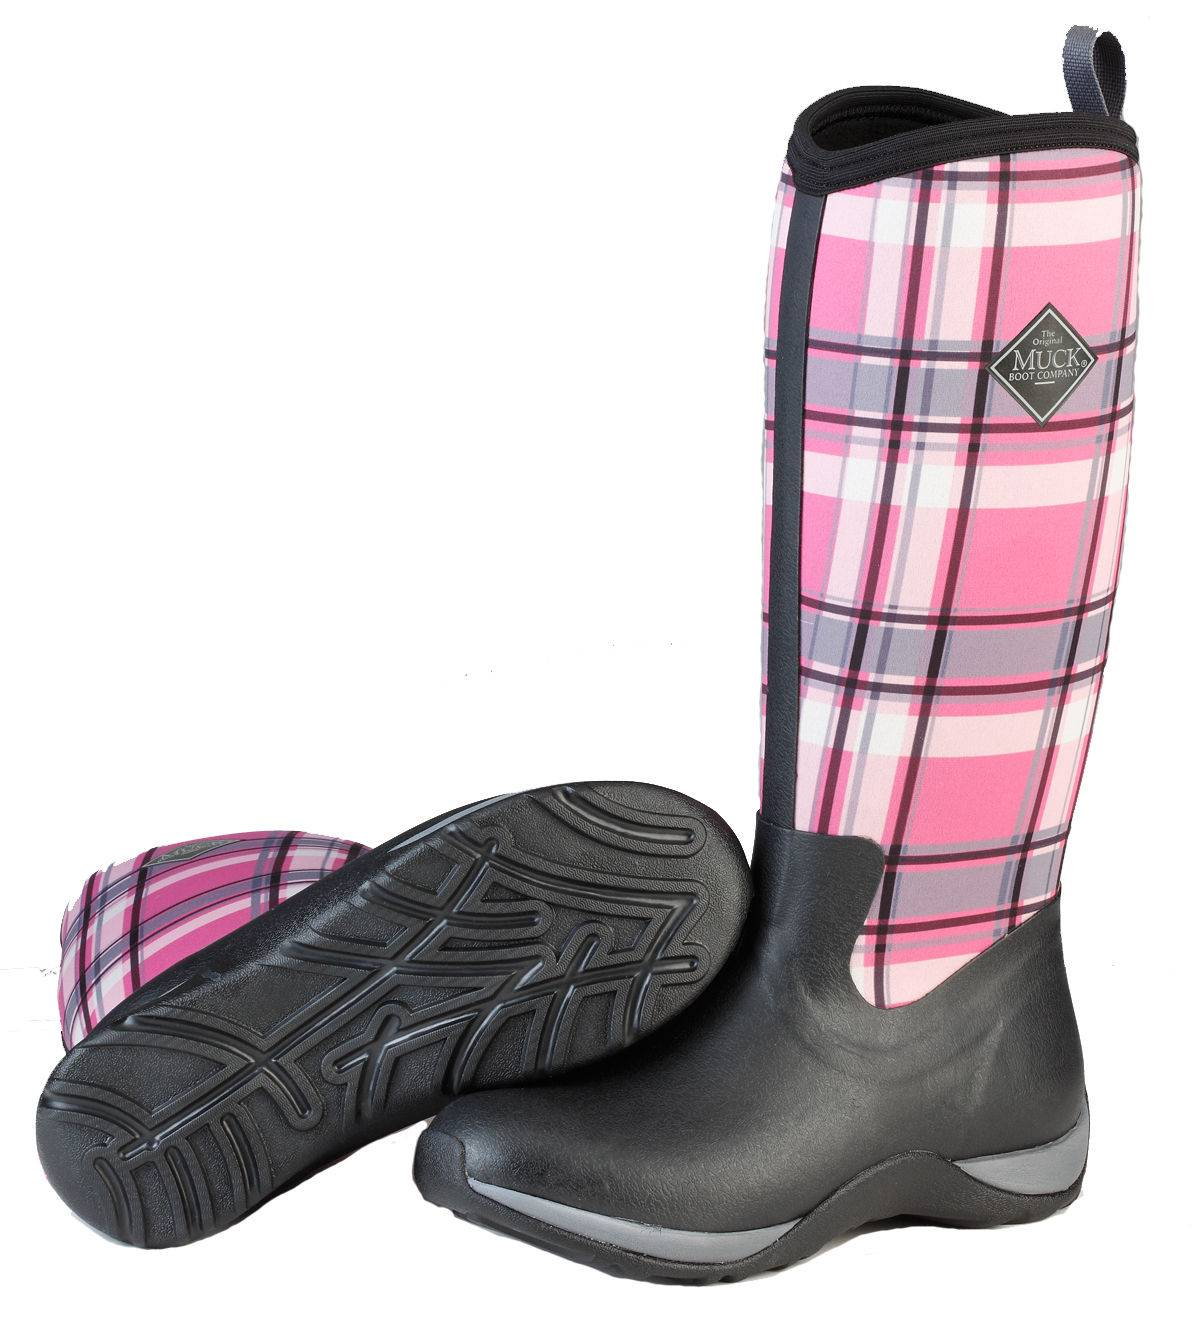 Muck Boots Women's Arctic Adventure - Black/Pink Plaid